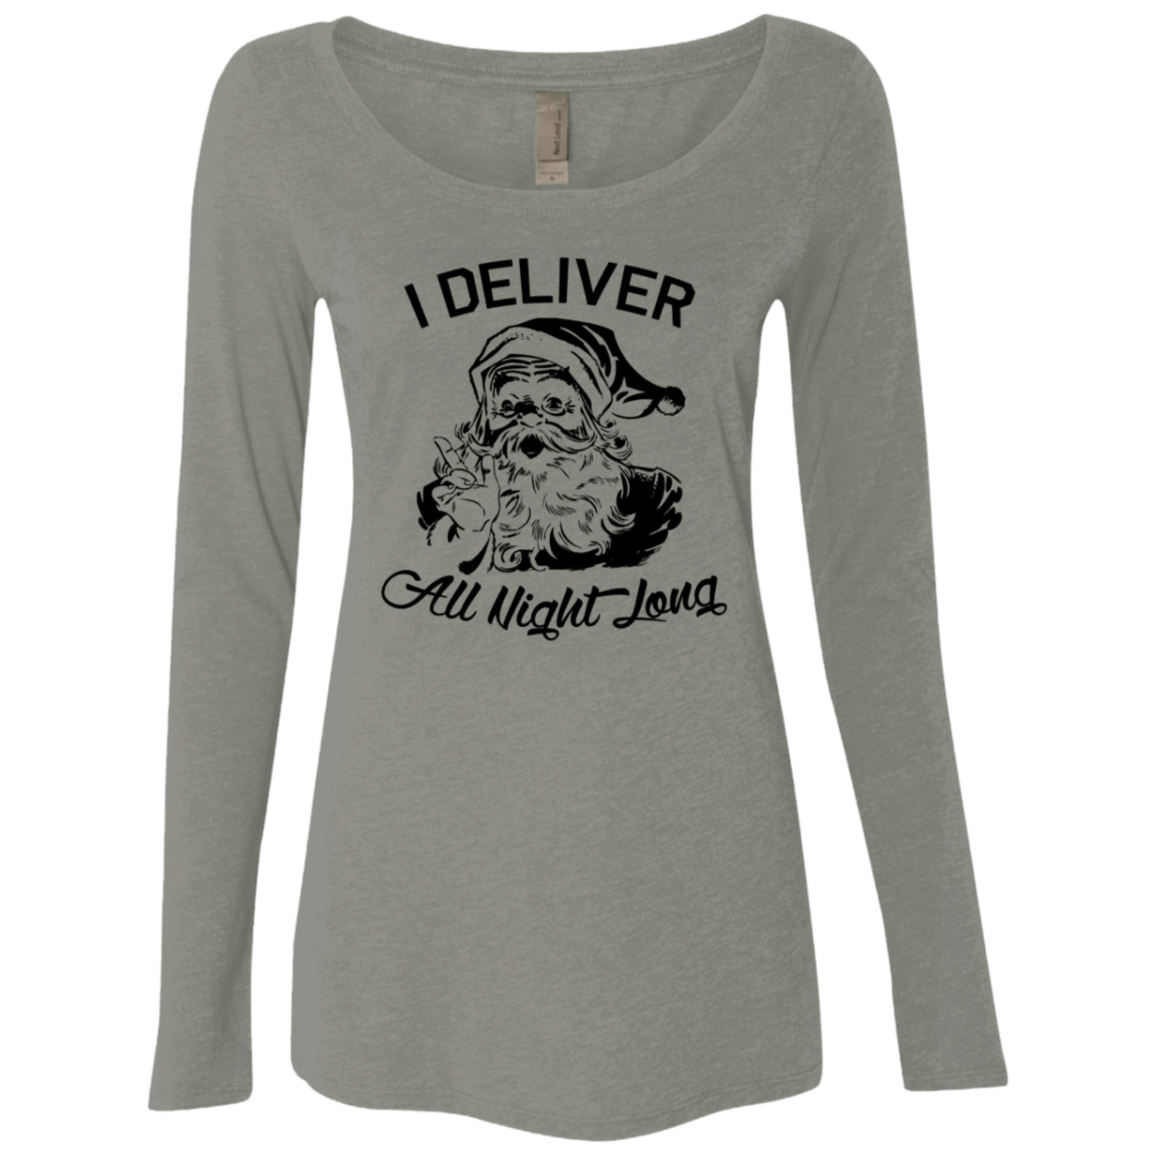 I DELIVER All Night Long Women's Long Sleeve Tee